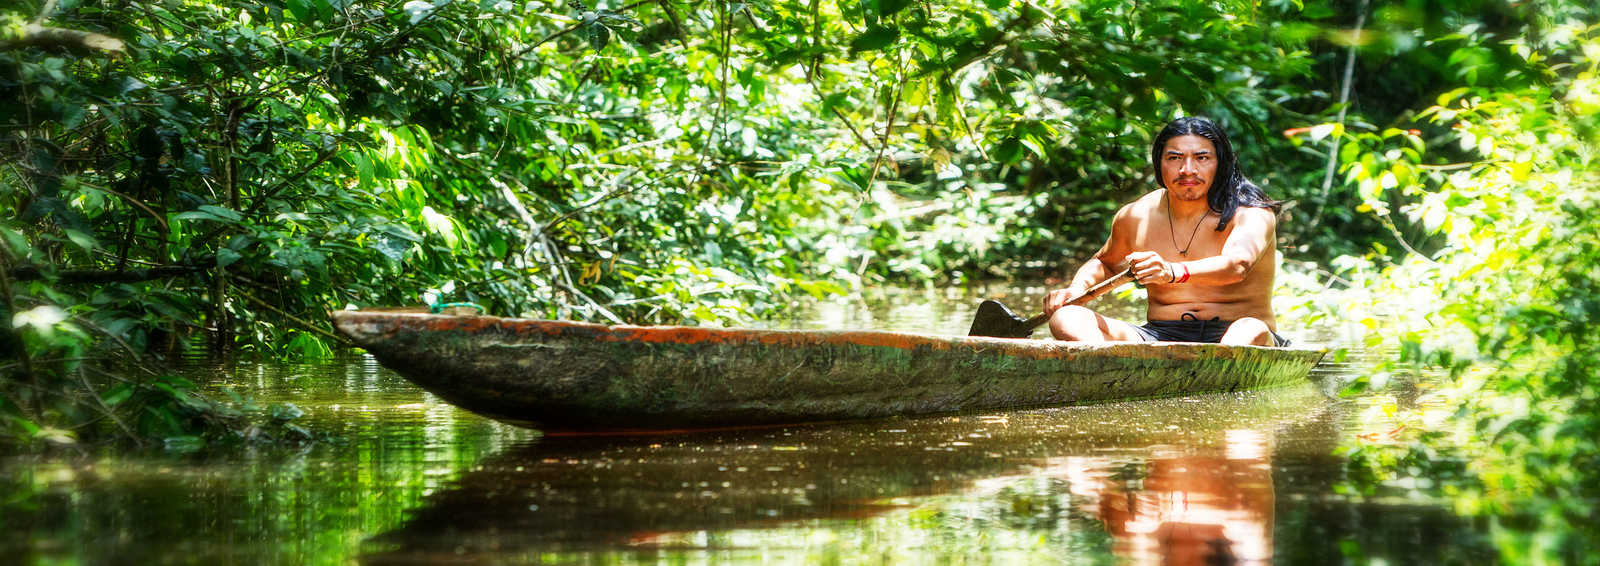 Indigenous man canoeing through the Amazon jungle, Ecuador